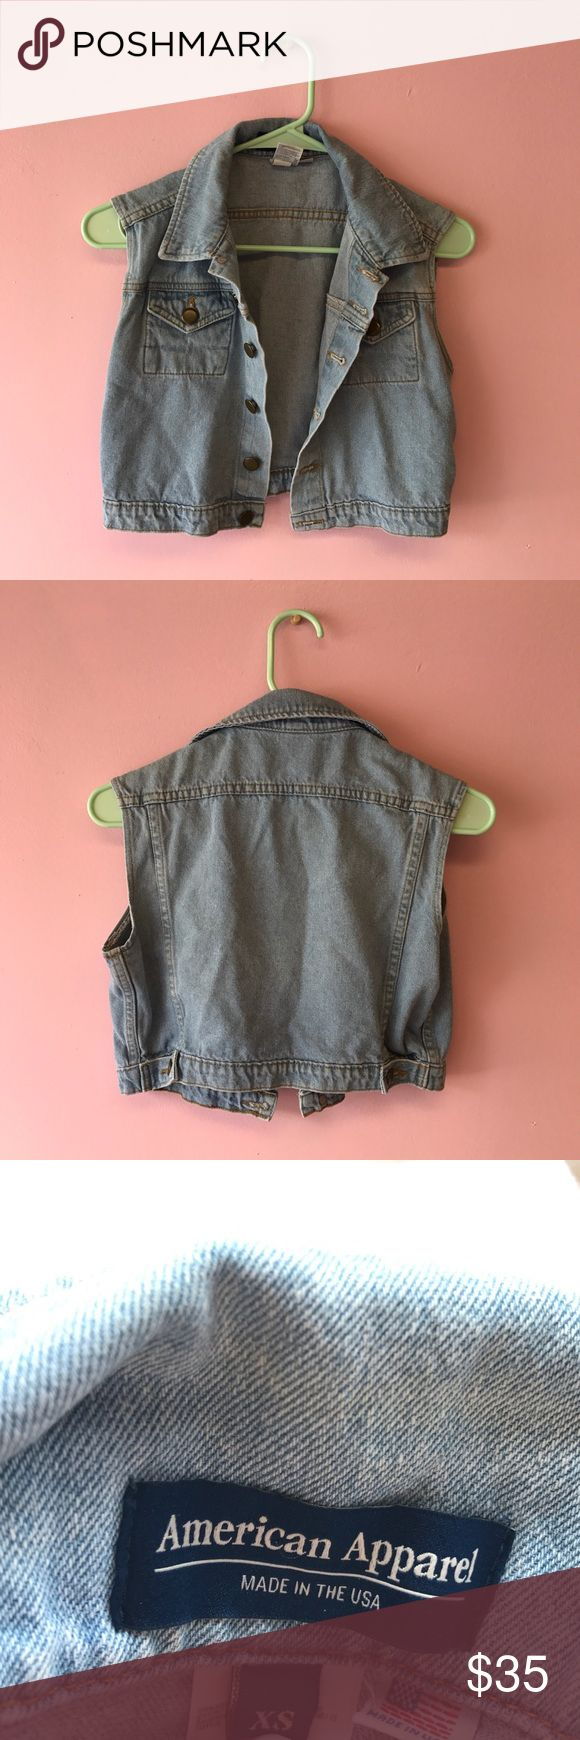 FLASH SALE✨ AMERICAN APPAREL CLASSIC DENIM VEST American Apparel light wish indigo denim vest that is slightly cropped. Excellent condition and ships sake or next day. Size XS American Apparel Jackets & Coats